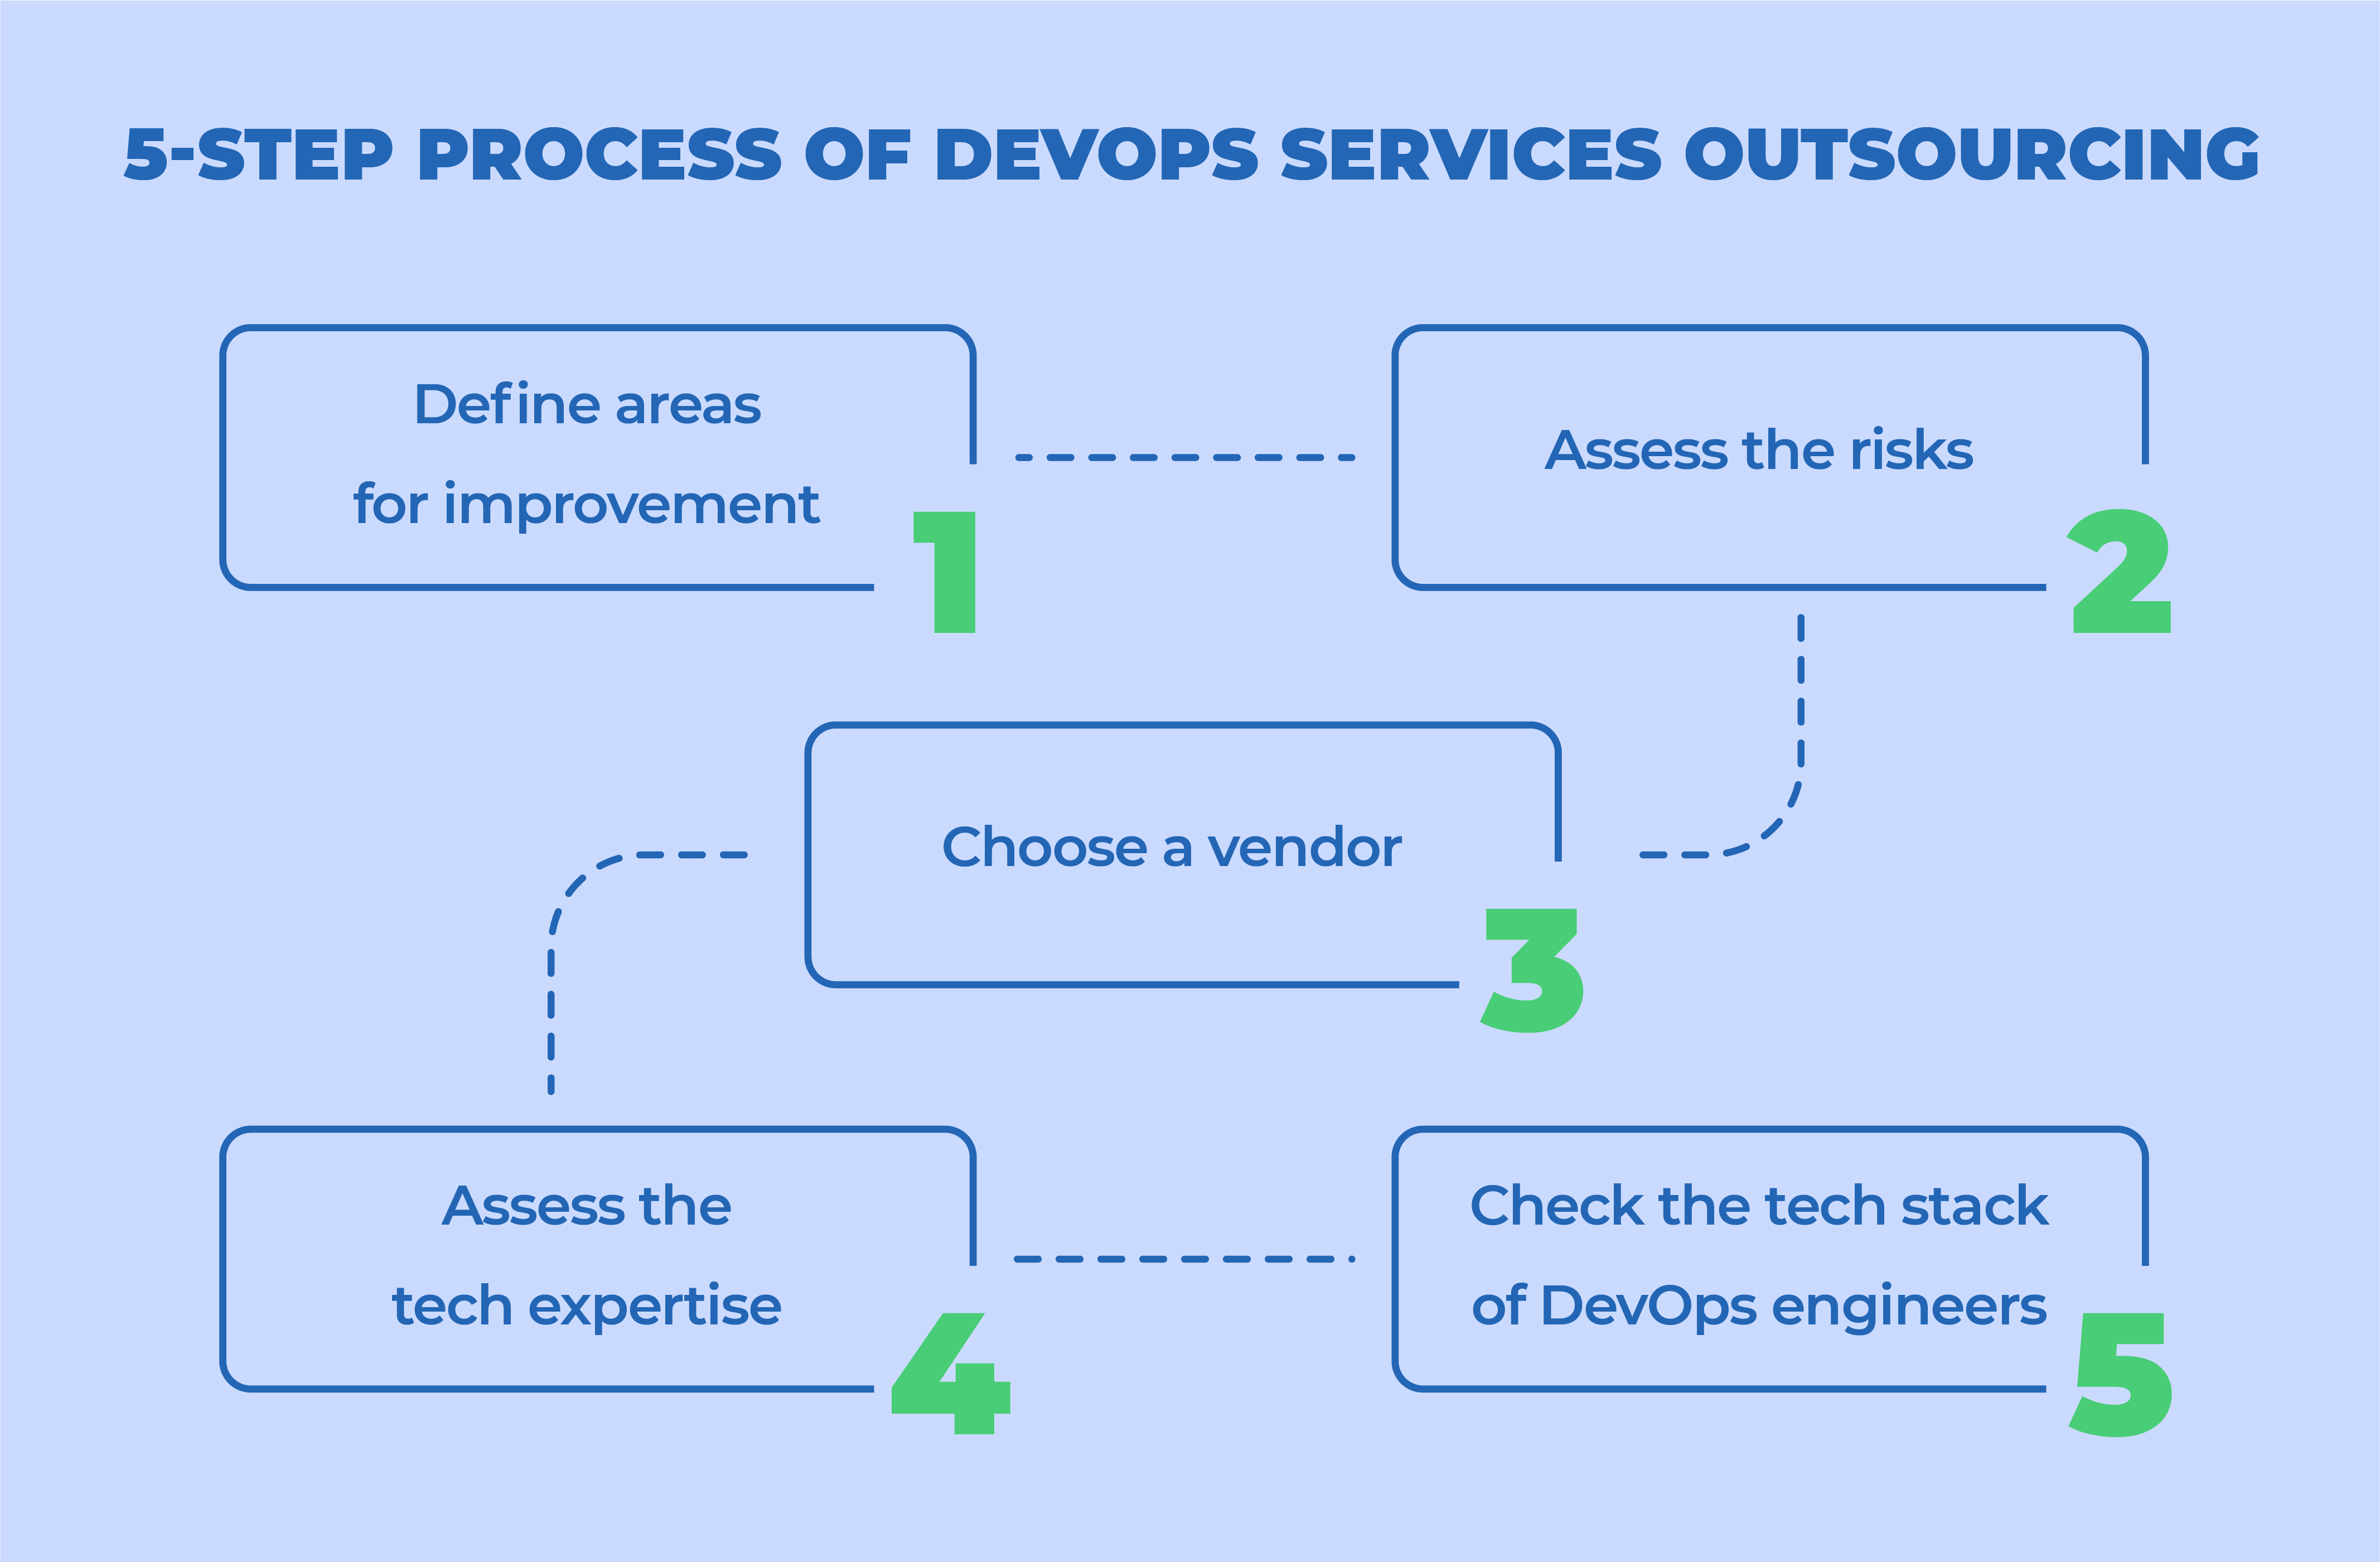 5-Step Process of DevOps Services Outsourcing